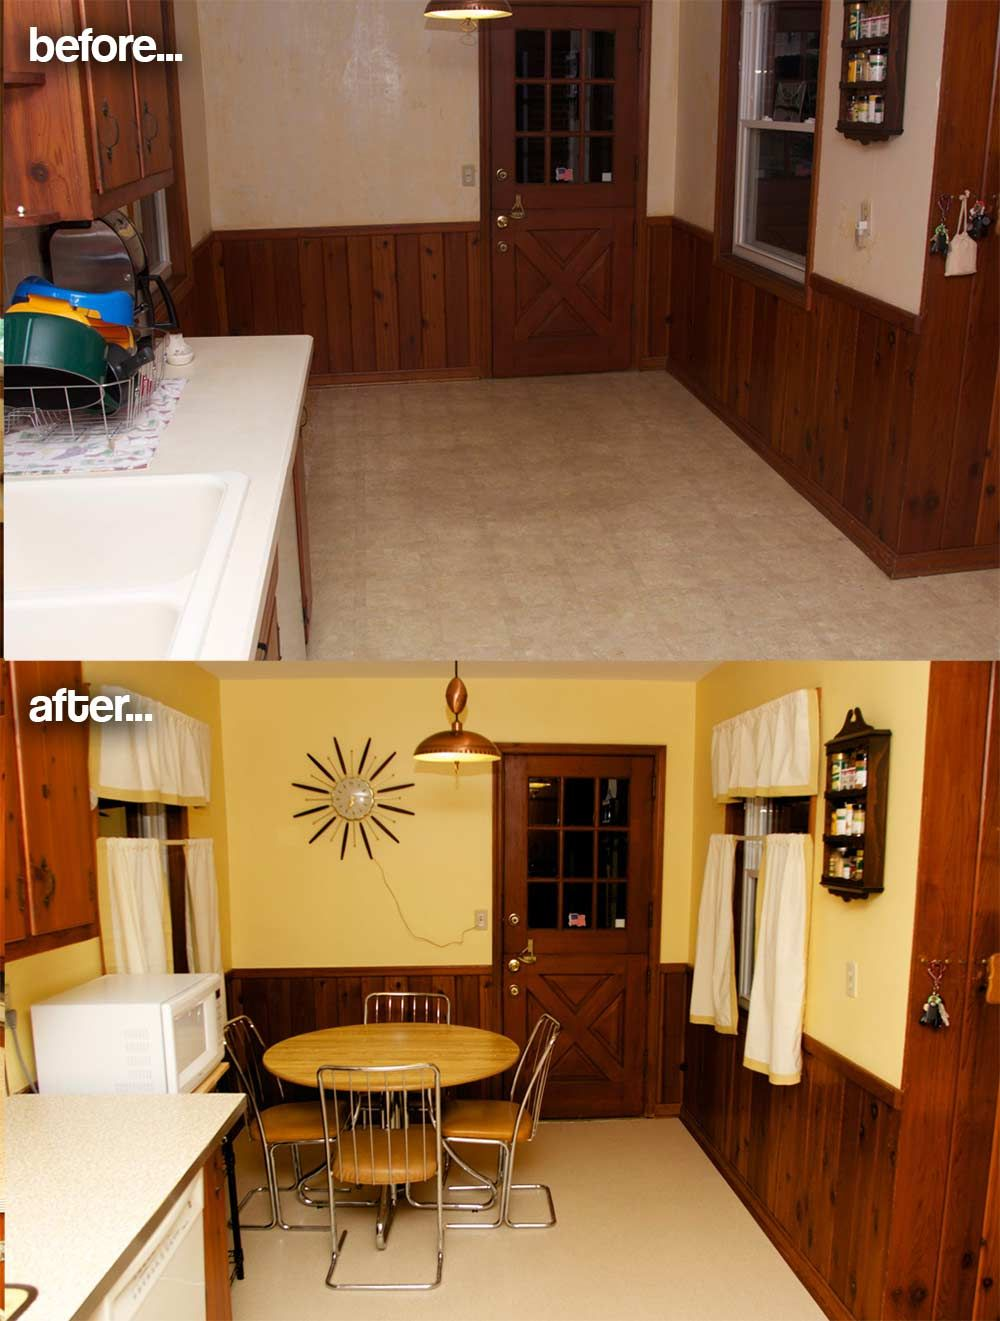 amber s 1961 knotty pine kitchen before and after pinterest